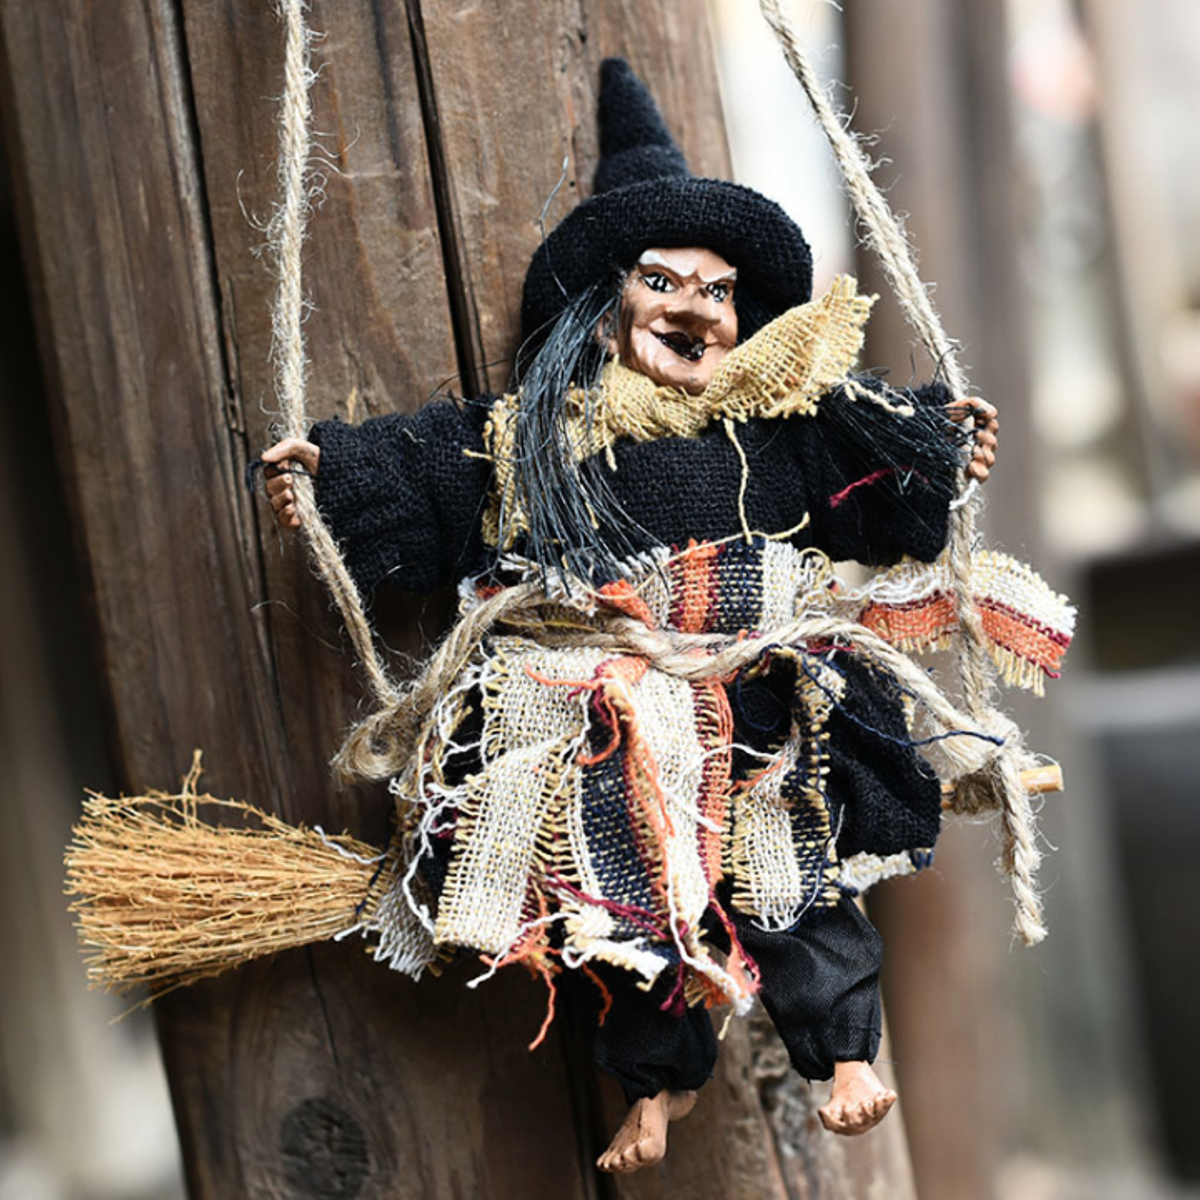 1PCS Hanging Flying Witch On Broom Ornament Halloween Party Door Welcome Decorations